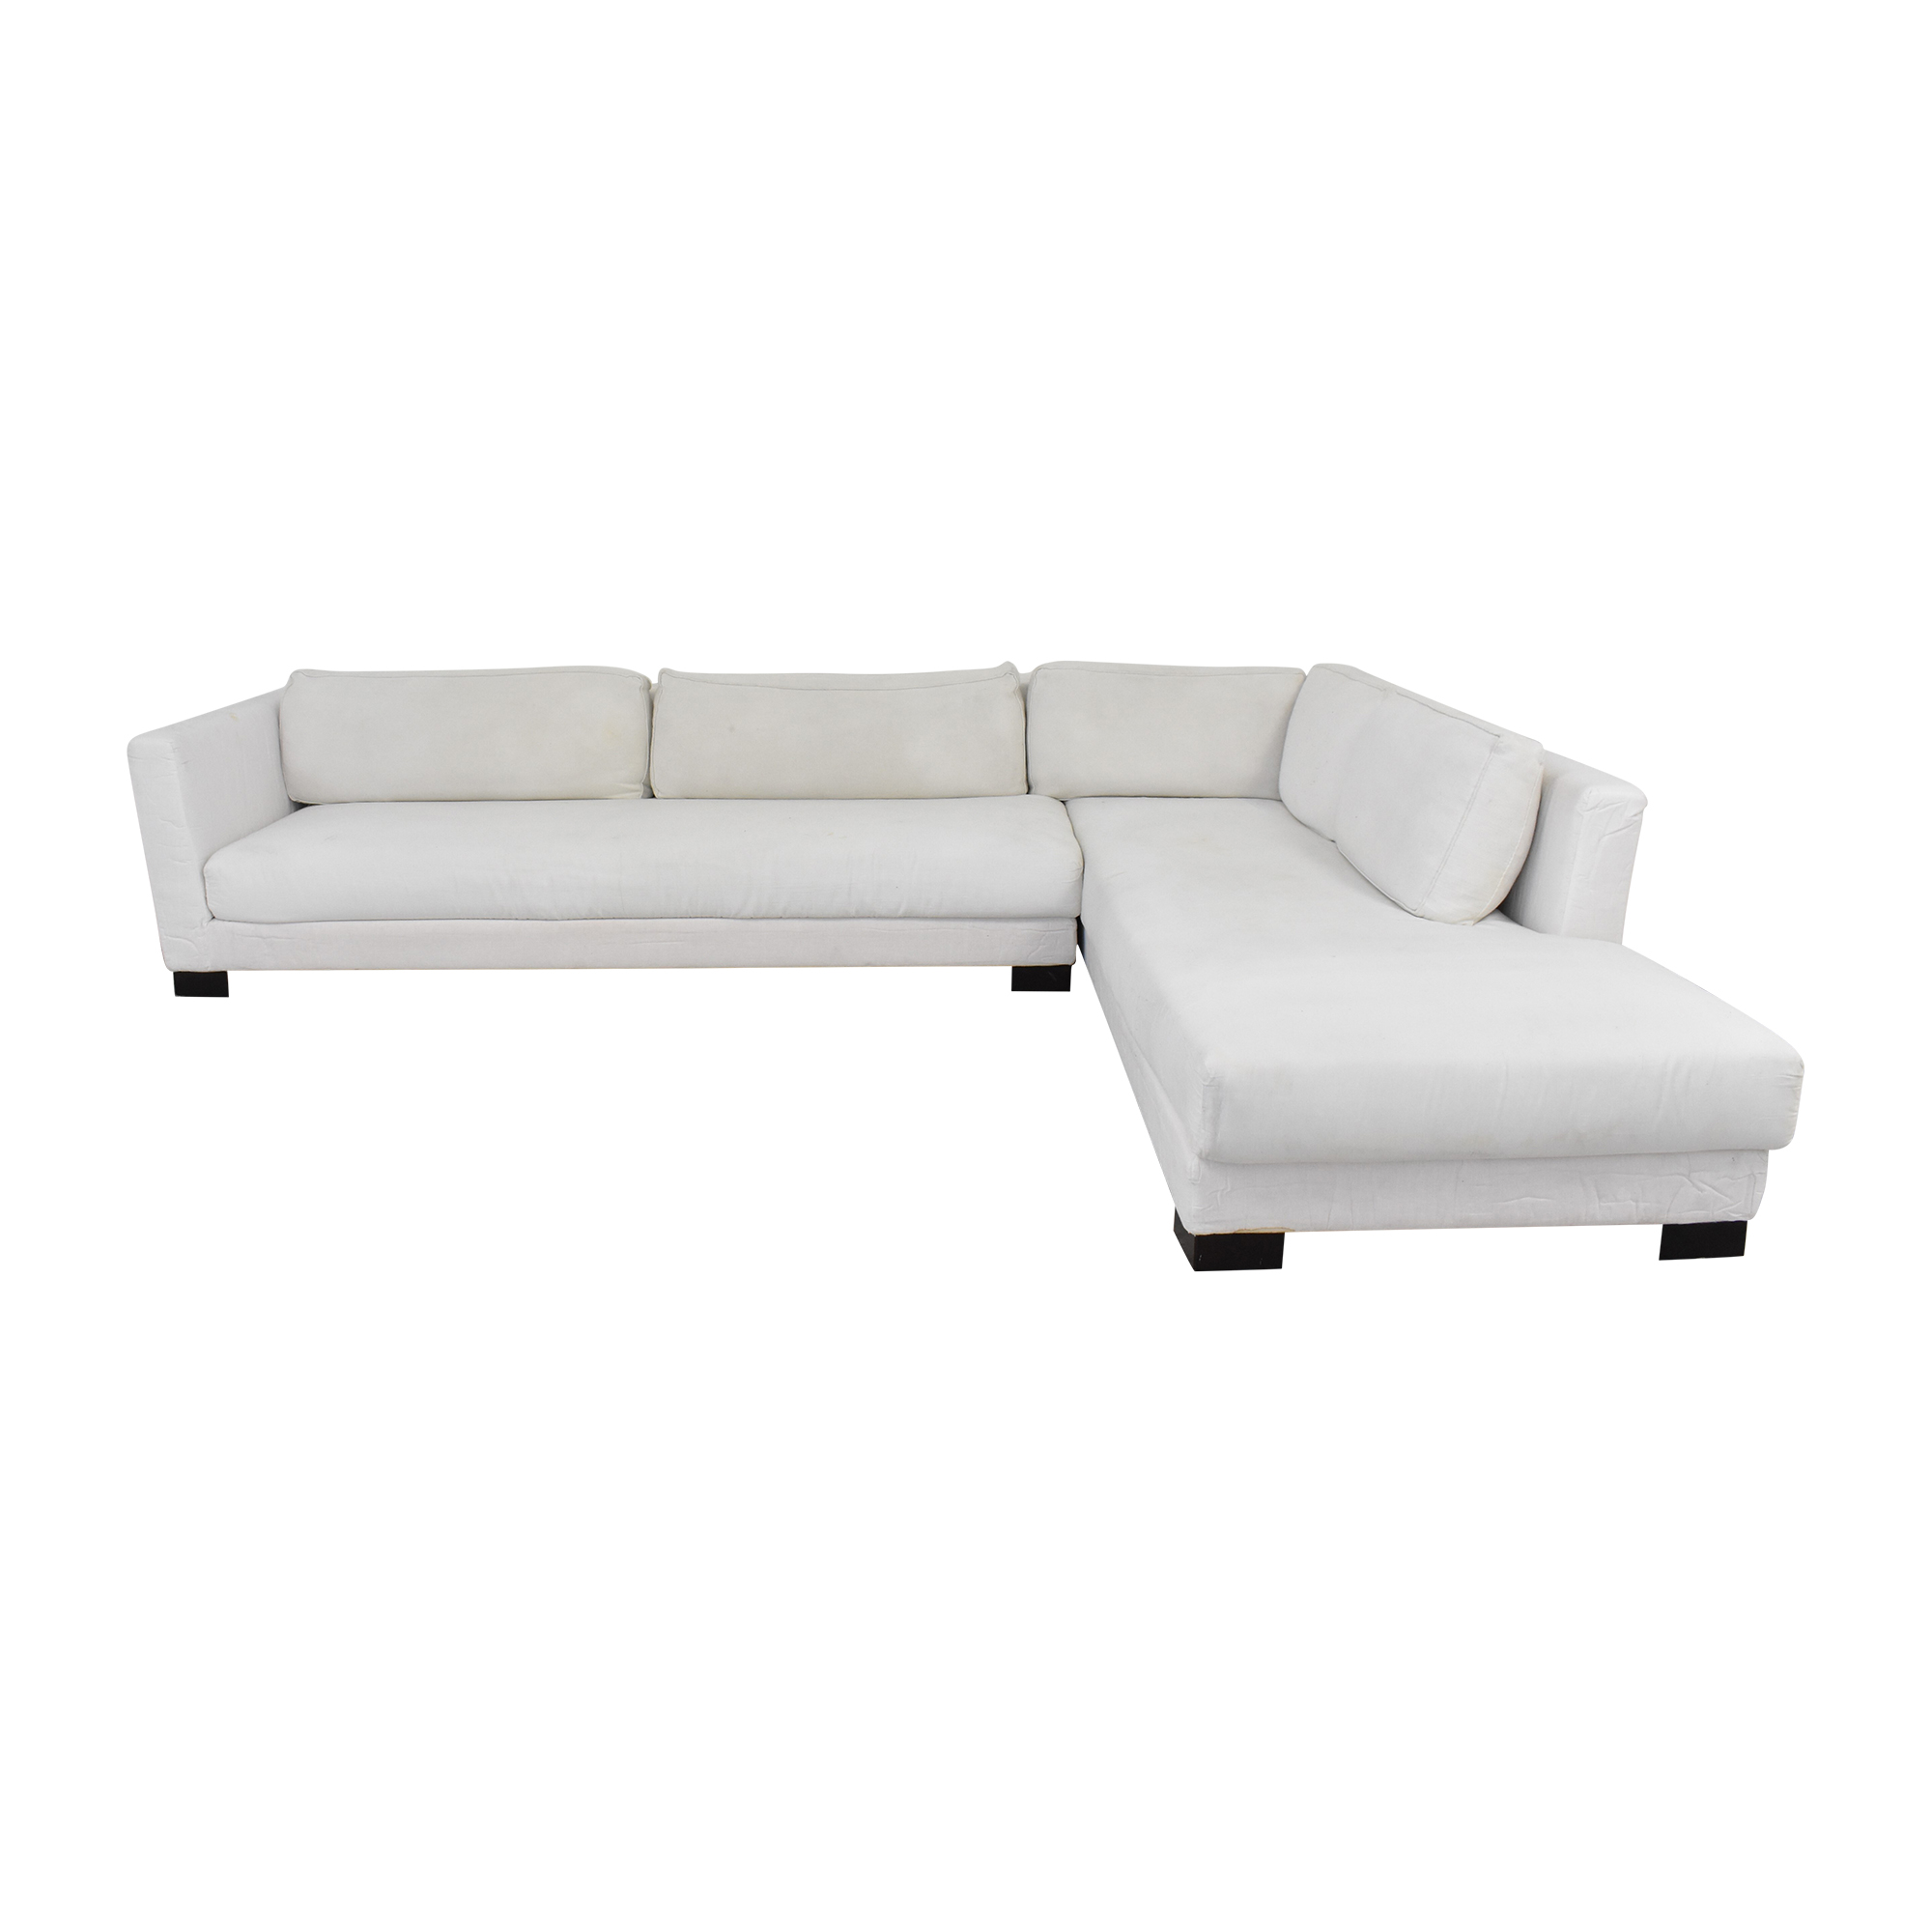 Verzelloni Verzelloni Link Sectional Sofa with Chaise for sale